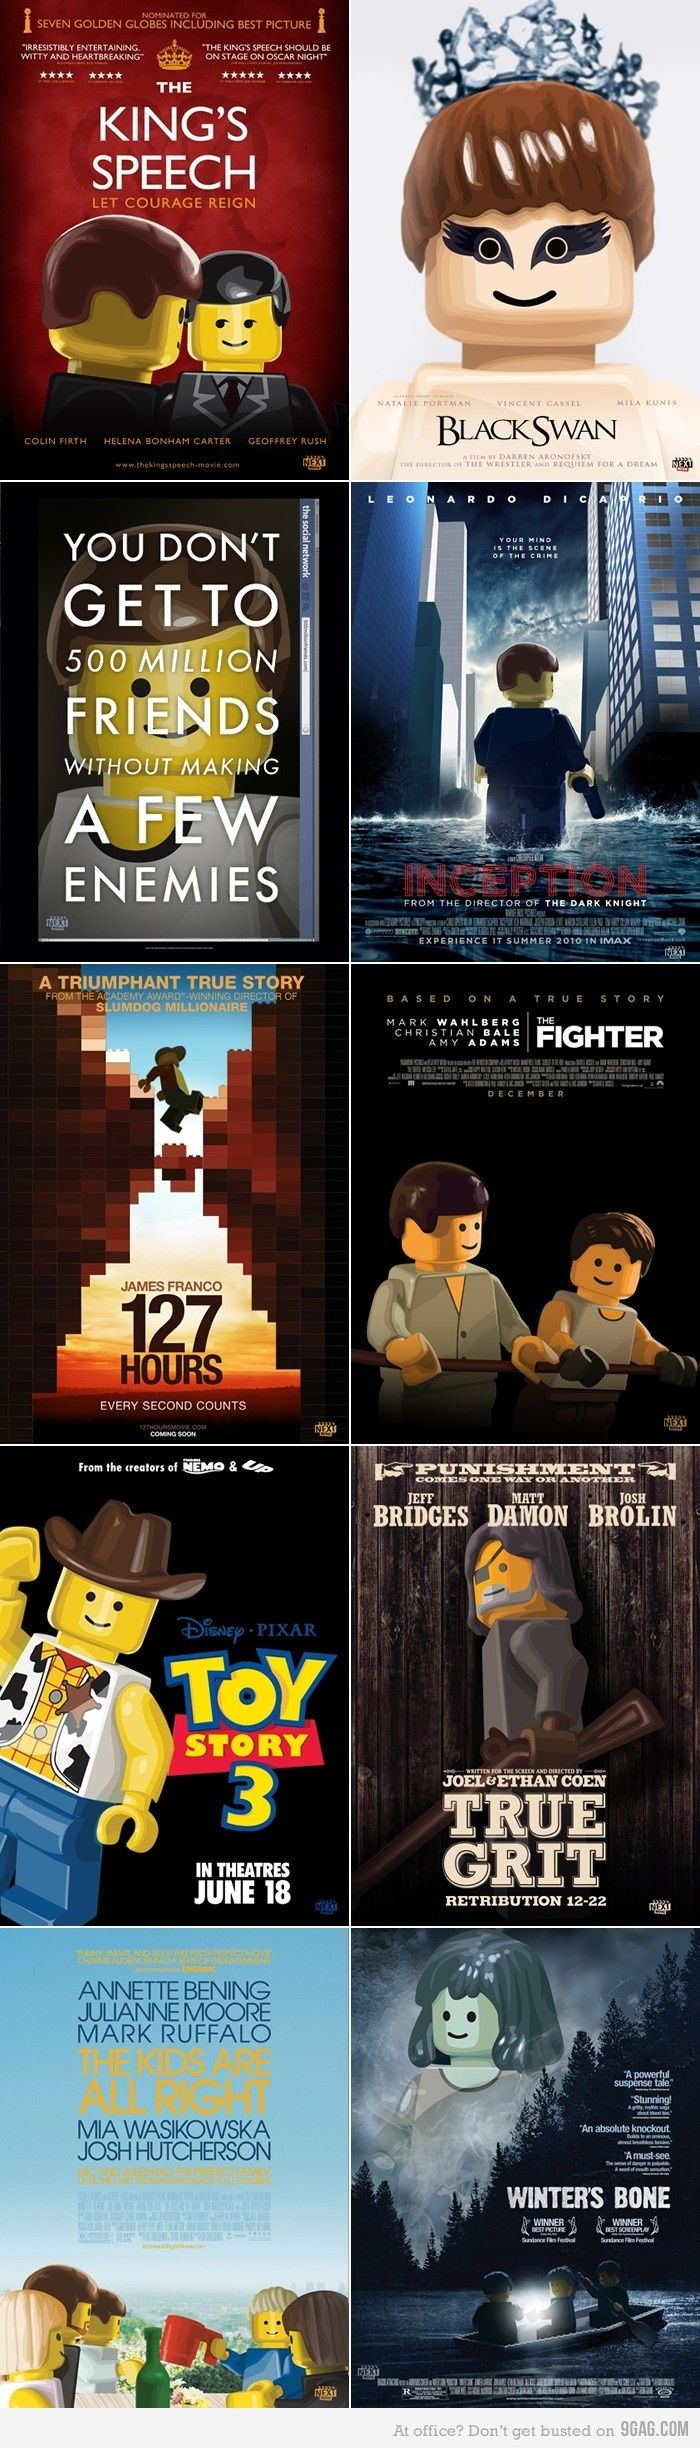 LEGO Style Movie Posters for the Best Picture OscarNominees by NEXTMOVIE